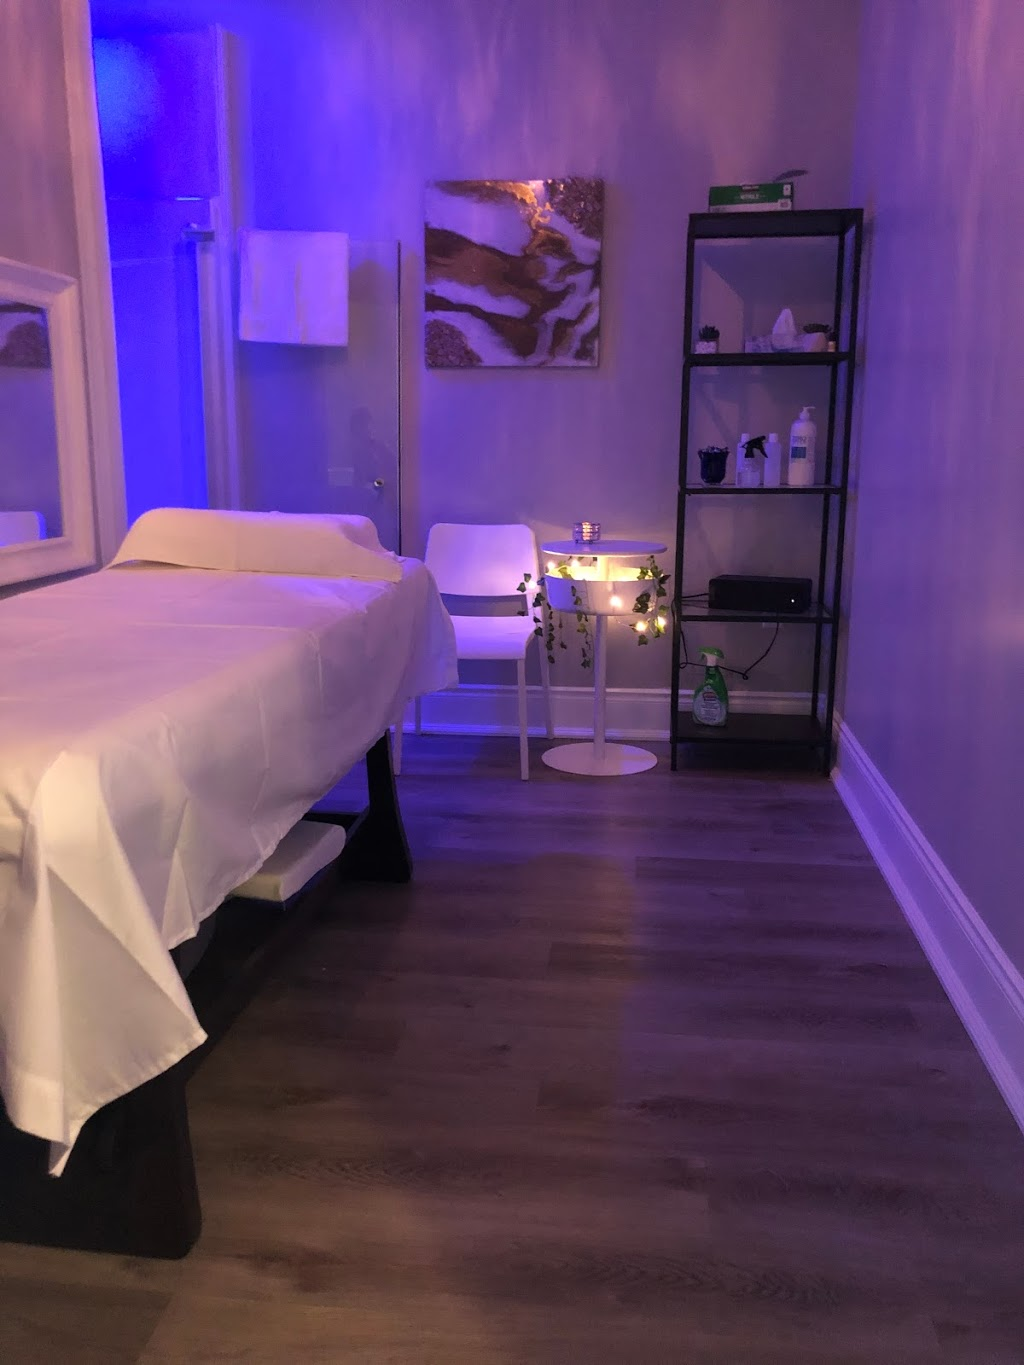 Sapphire Spa | spa | 152 Gray Rd, Stoney Creek, ON L8G 3V2, Canada | 9059309308 OR +1 905-930-9308